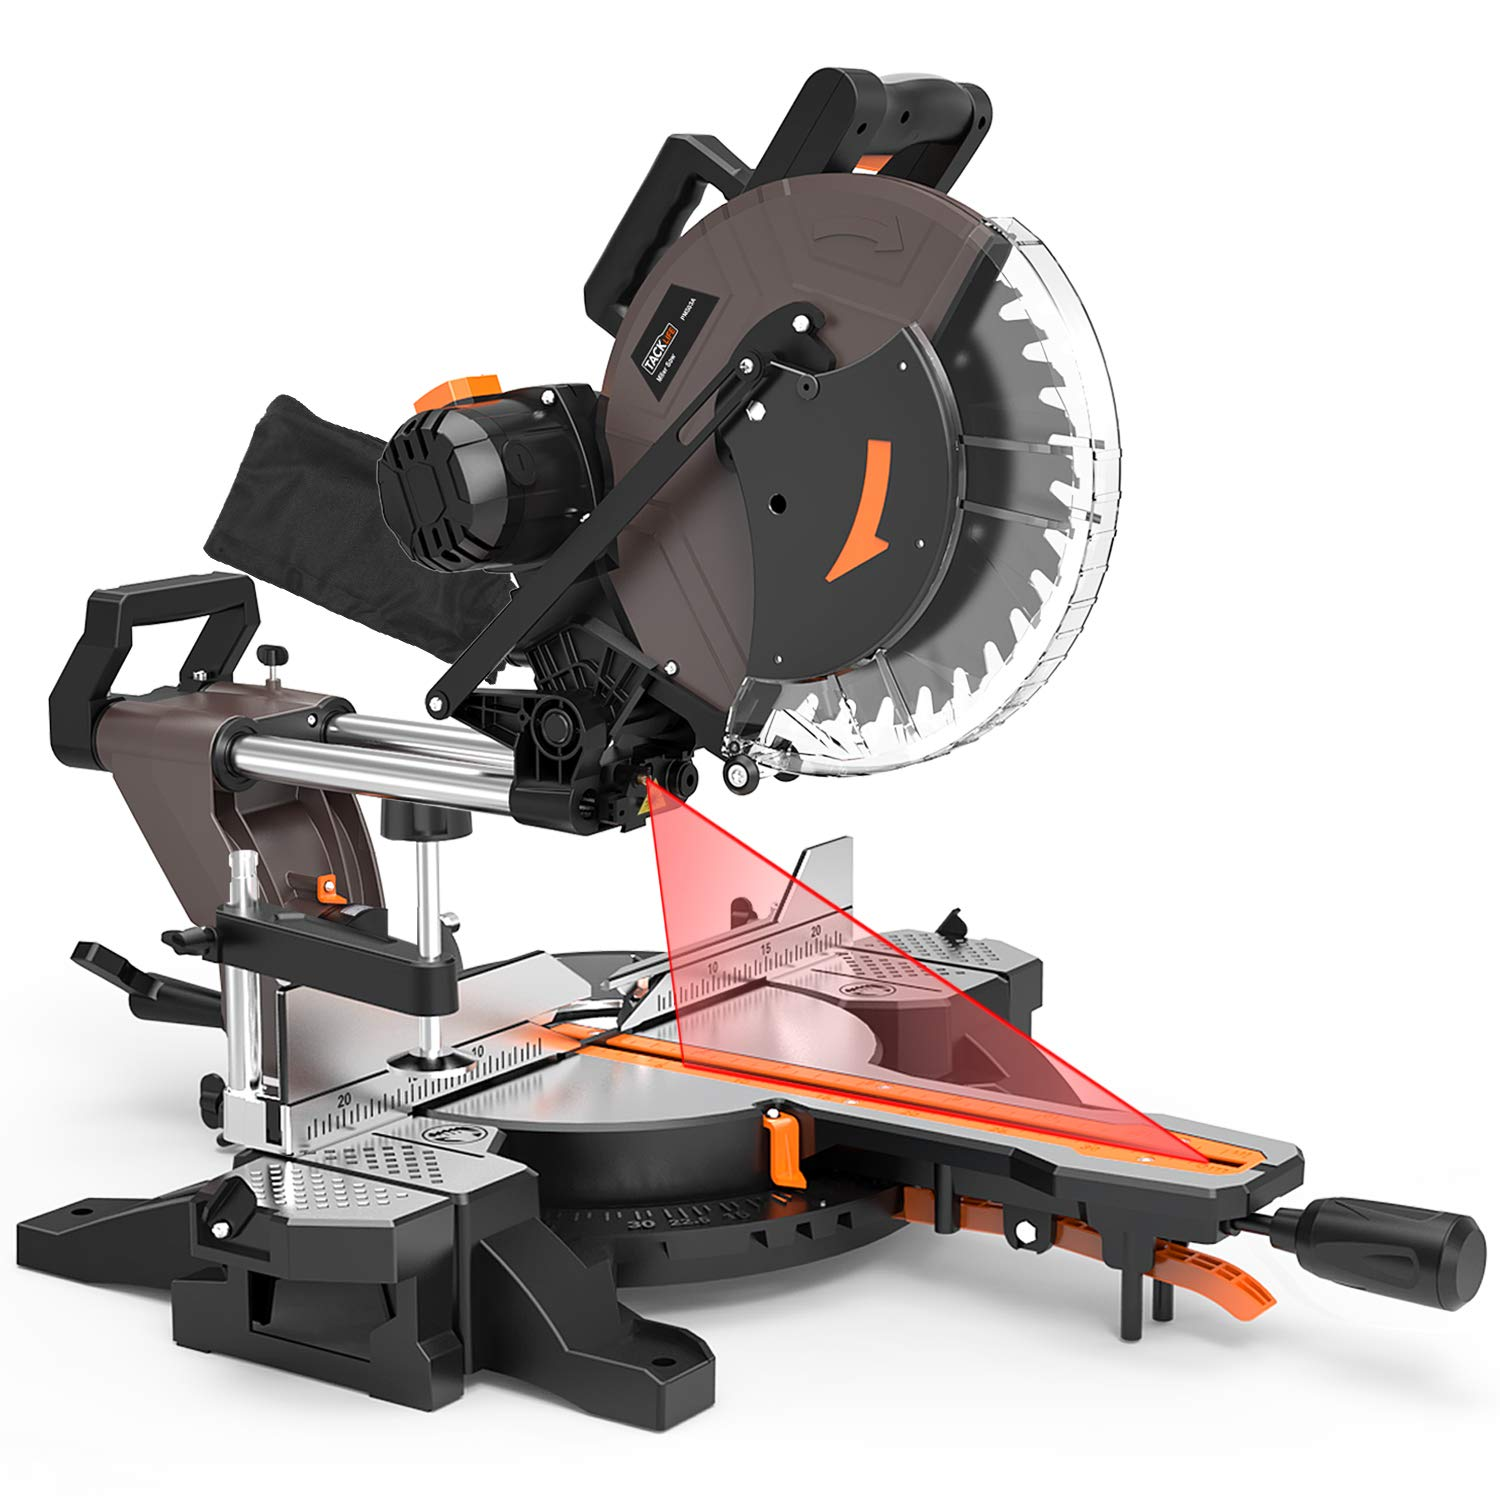 TACKLIFE Sliding Compound Miter Saw 12-Inch, 1700W, 3800rpm, Double-Bevel Cut (-45°-0°-45°) with Laser Guide, Extensible Table, Dust Bag, 40T 305mm Blade for Wood Cut - PMS03A